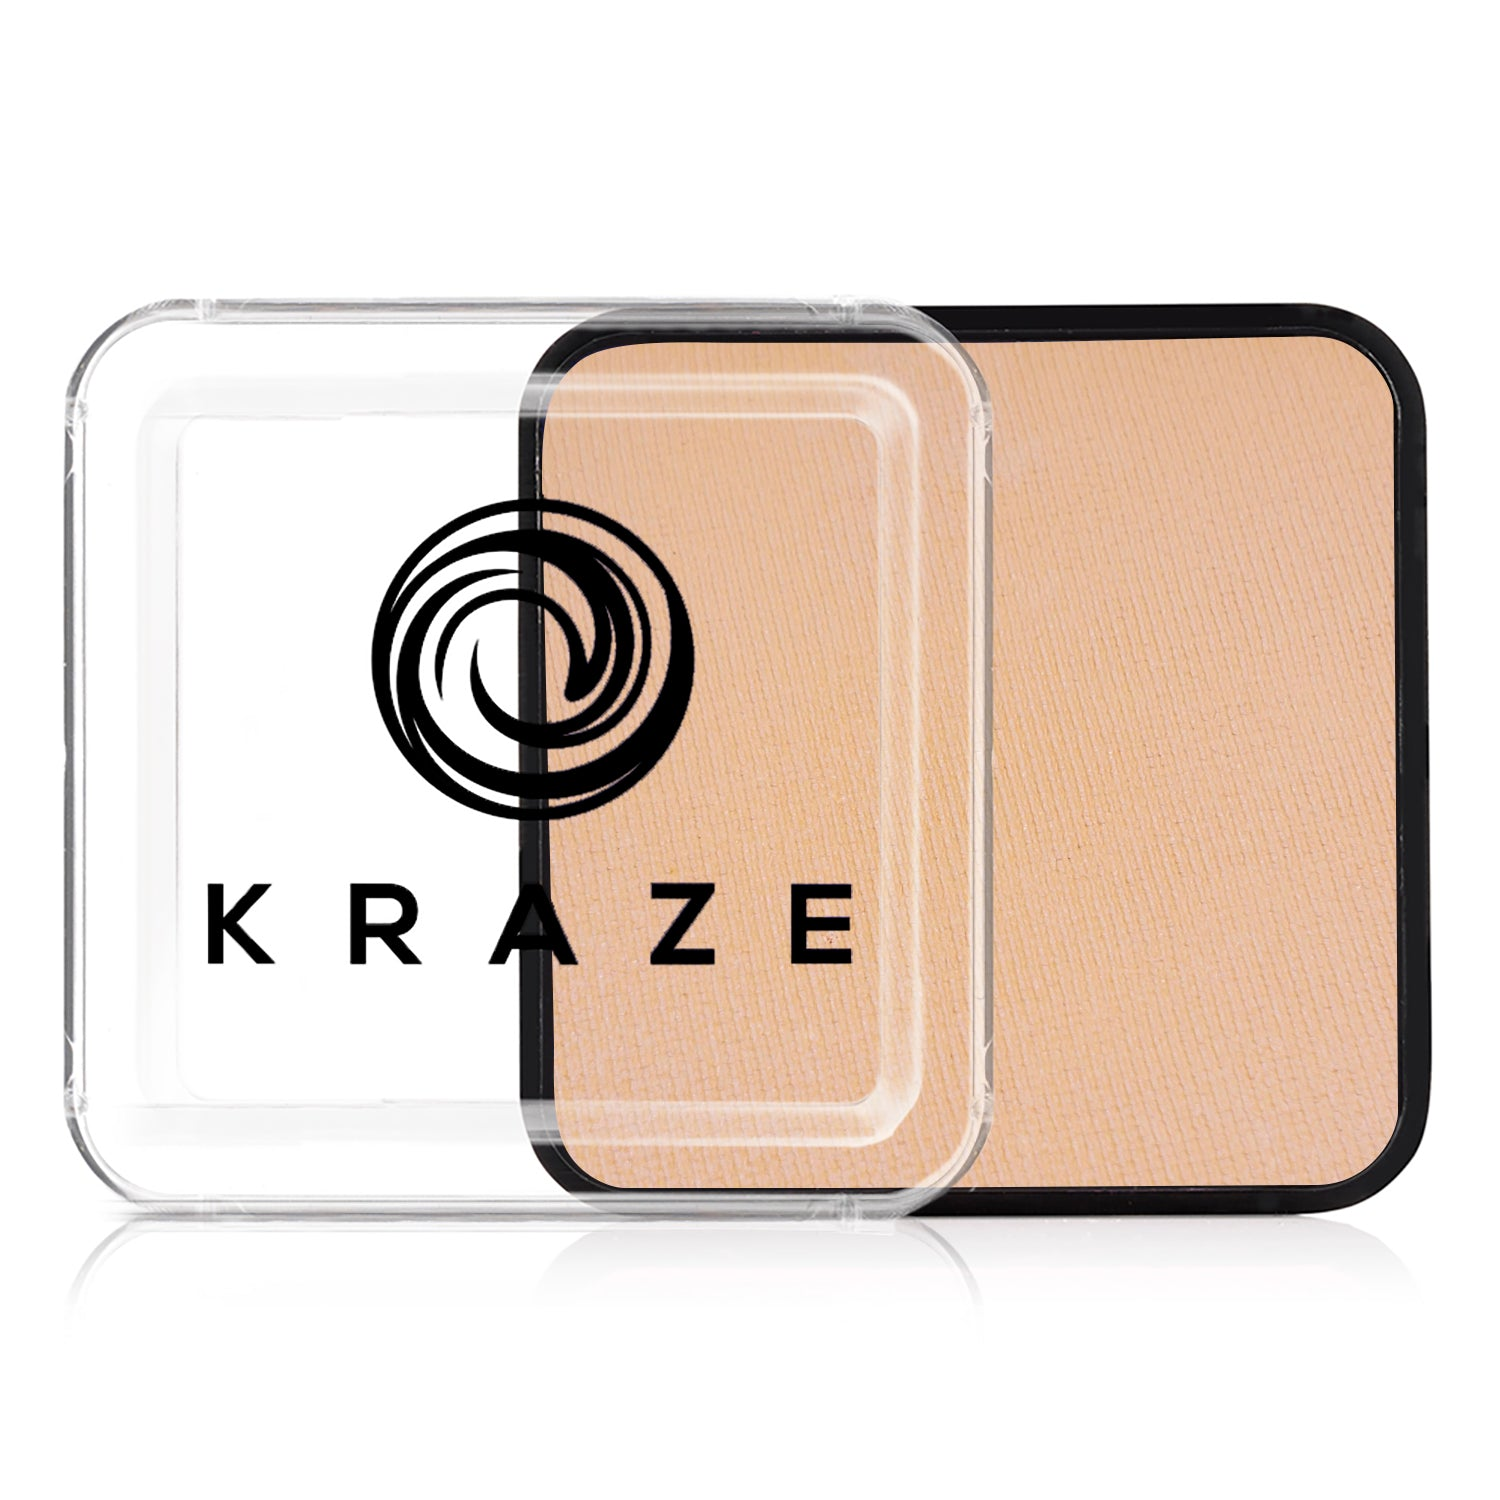 Kraze Square - Blush (25 gm)